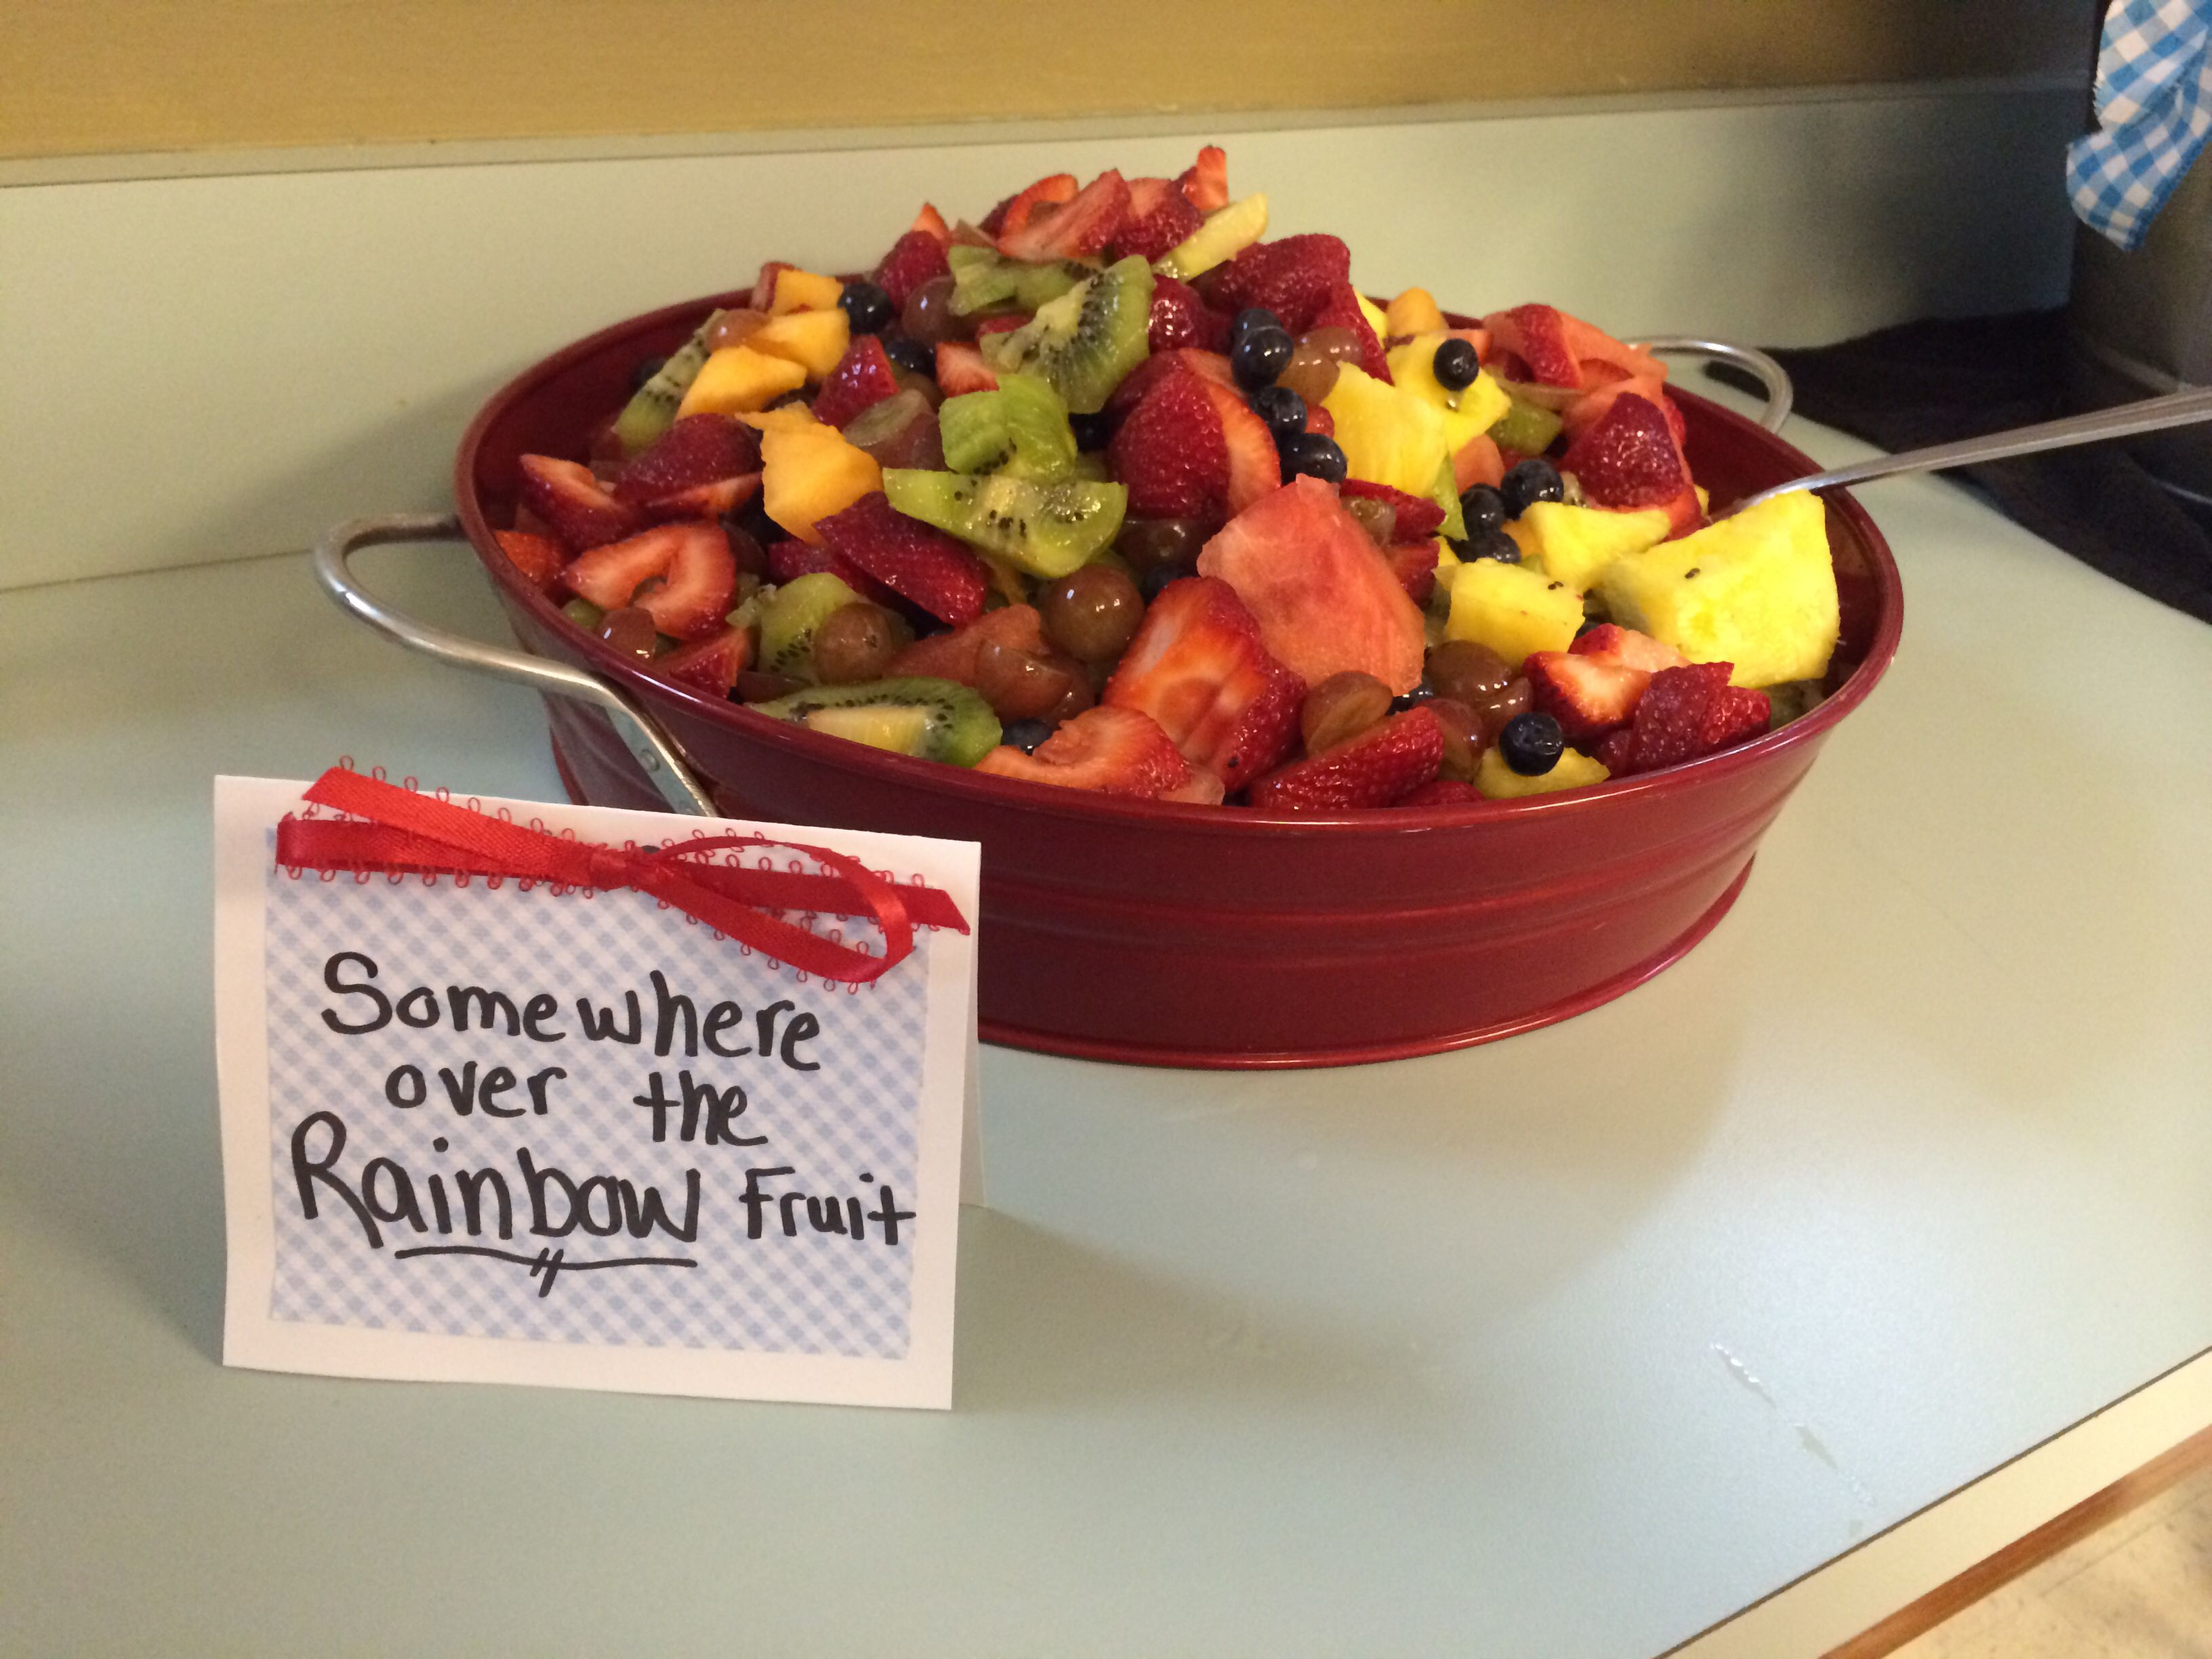 Wizard of oz party. Somewhere over the rainbow fruit